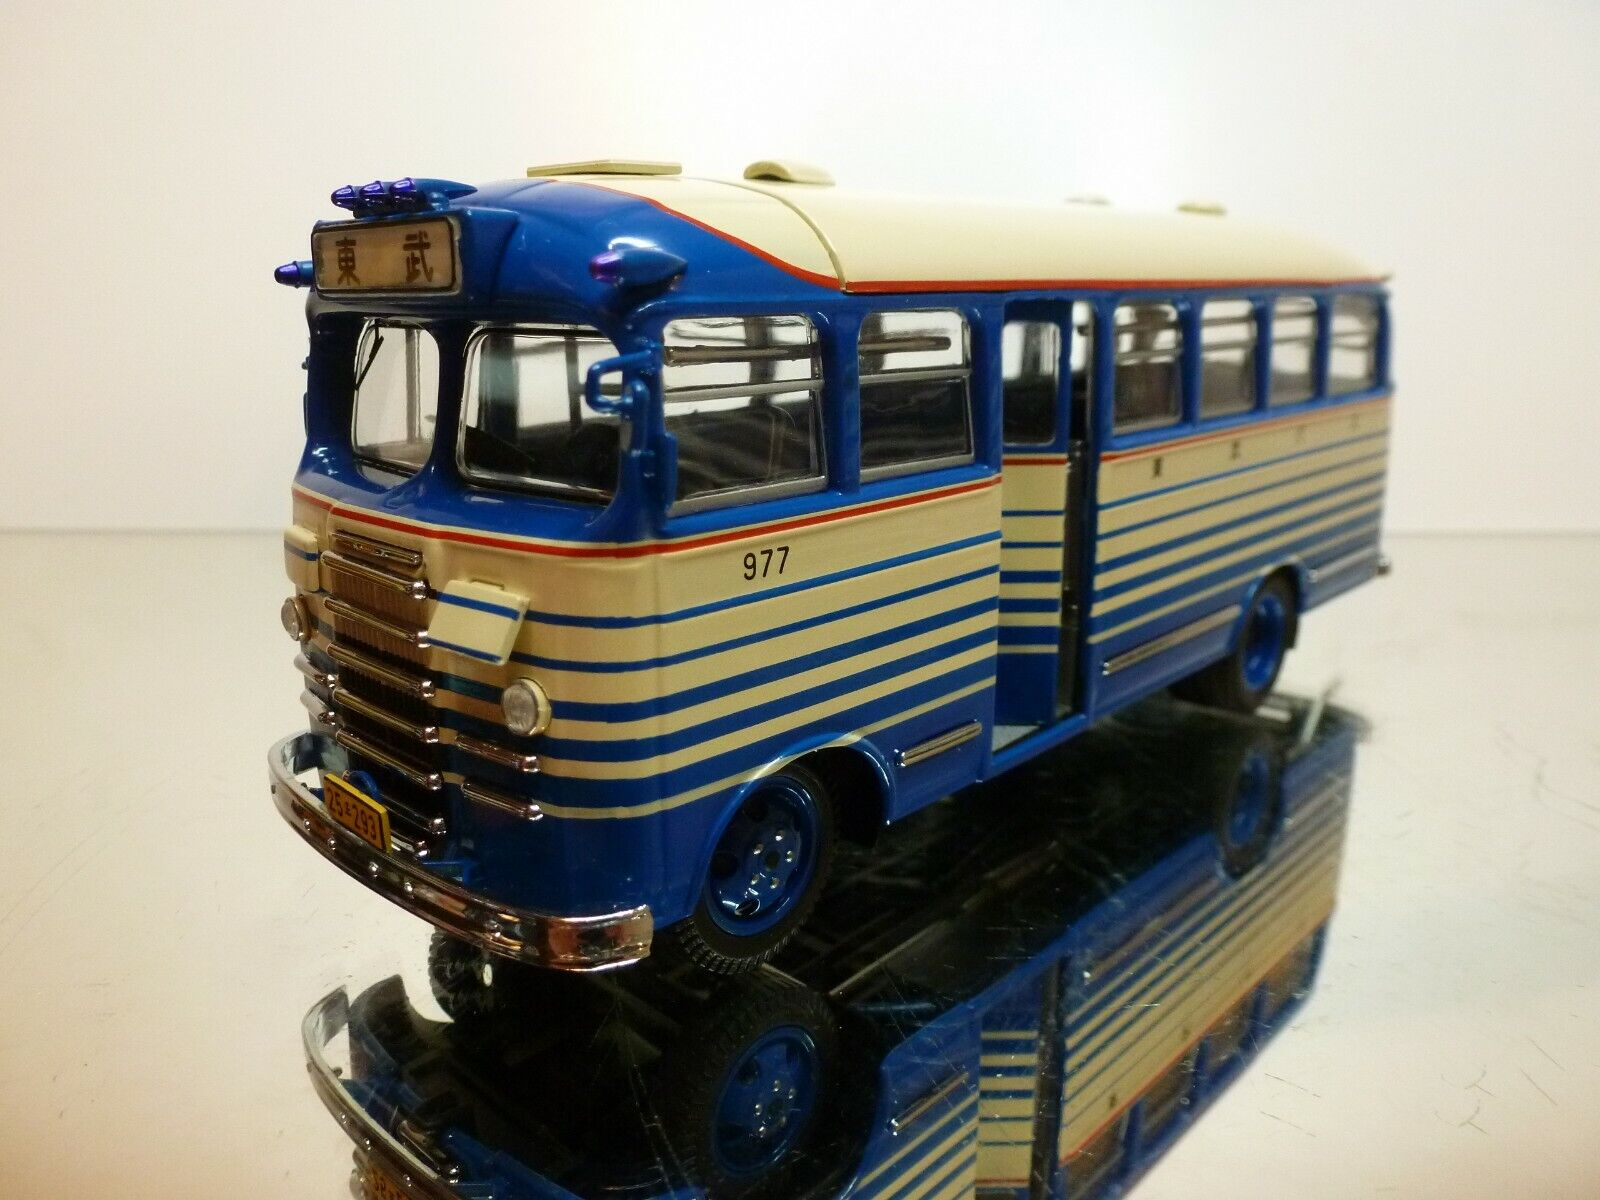 EBBRO MMP NISSAN N180 - TOBU AUTOBUS JAPAN 1951 - bleu + CREAM 1 43 - EXCELLENT